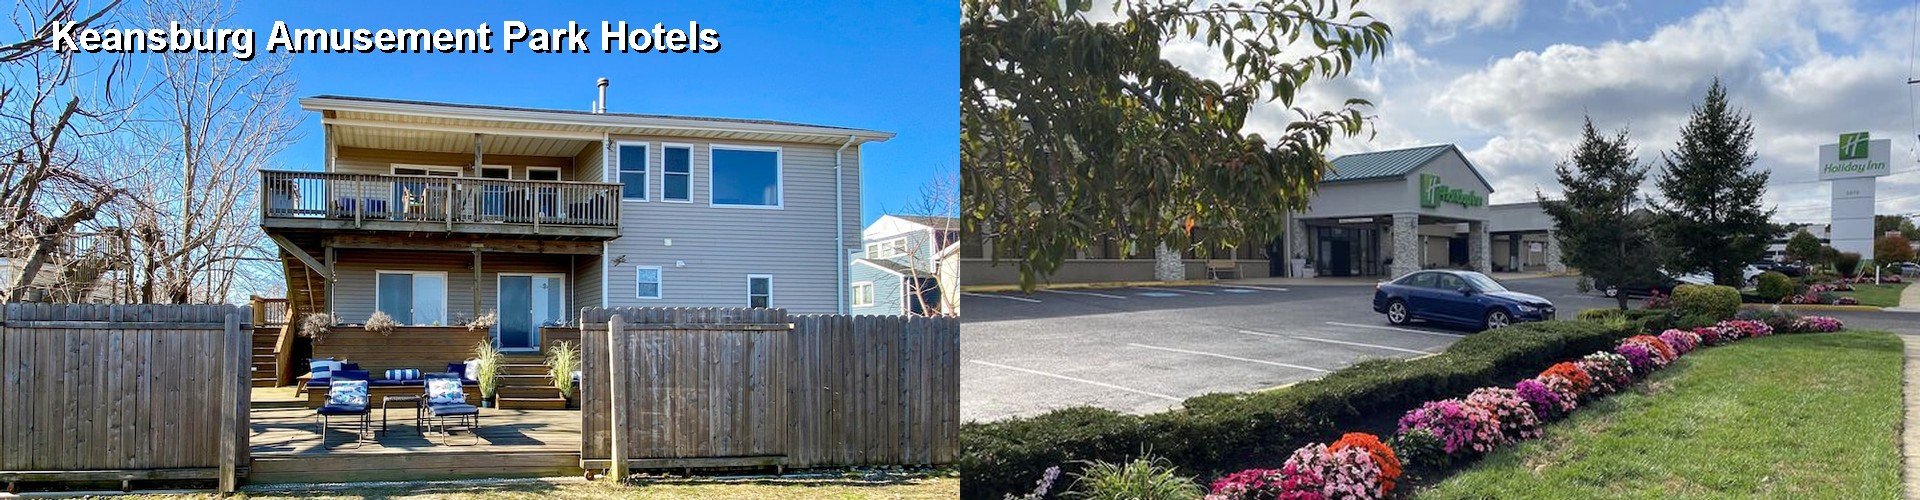 5 Best Hotels near Keansburg Amusement Park